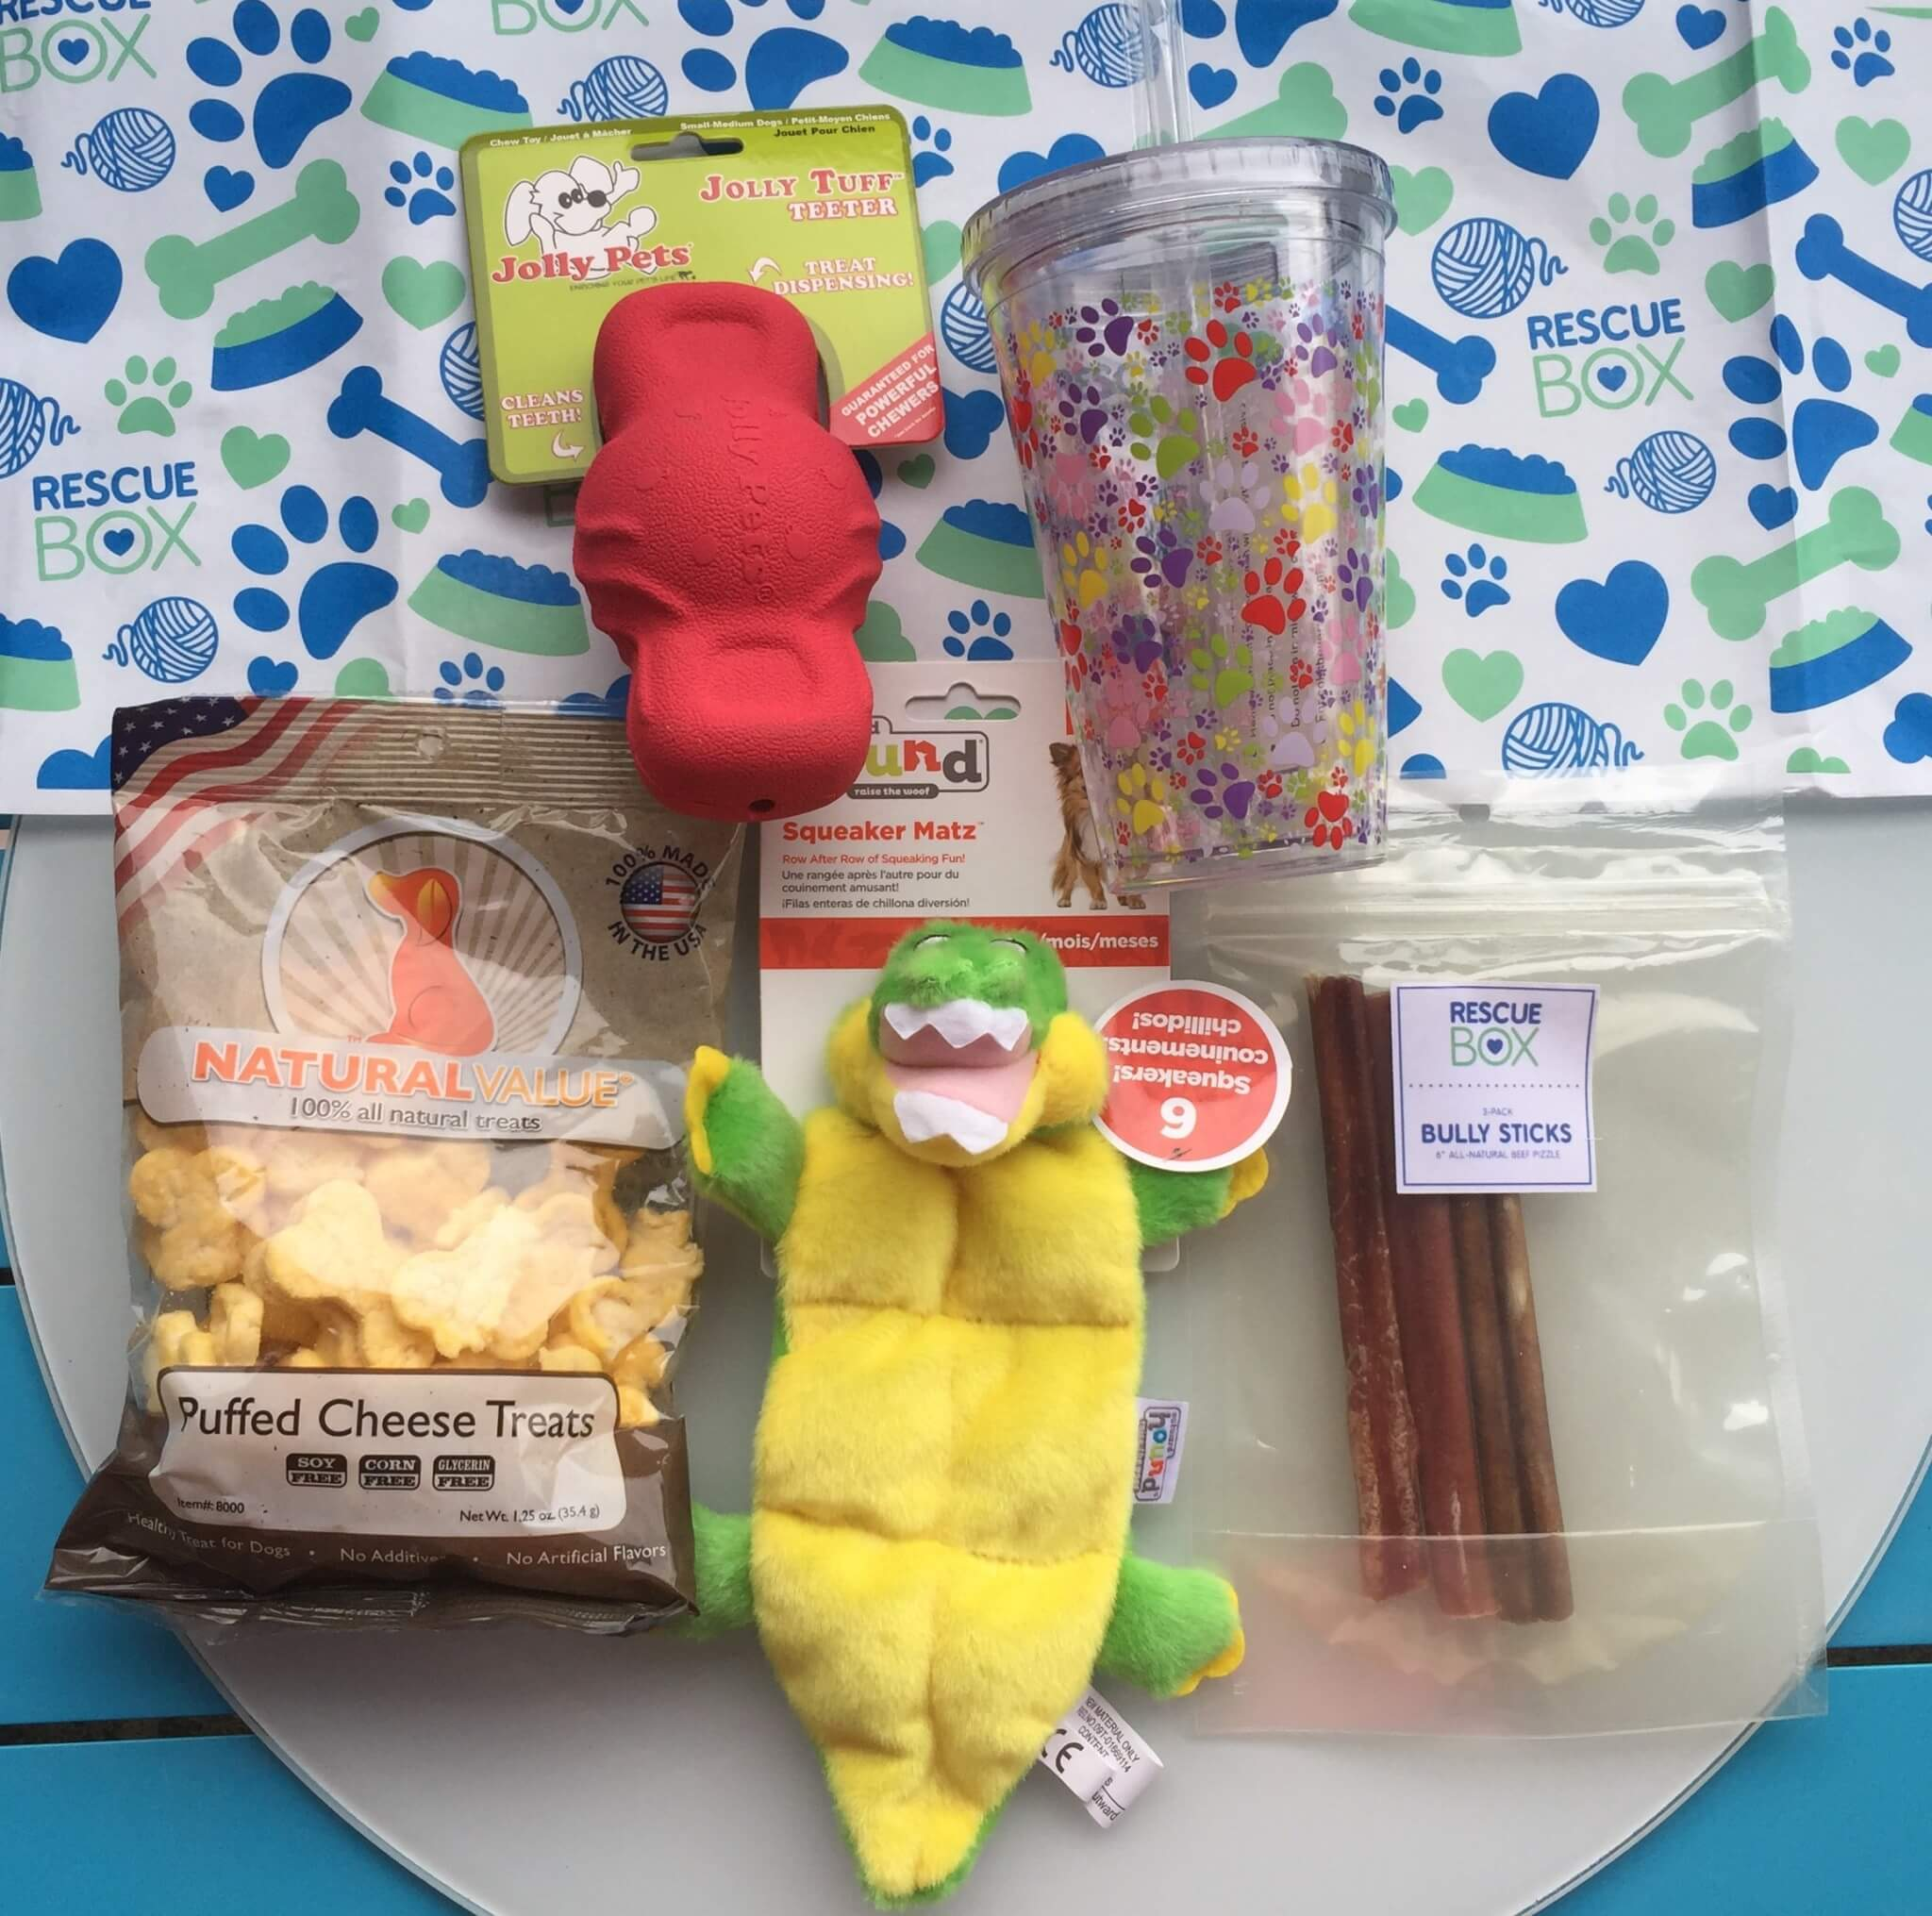 Rescue Box July 2016 Subscription Box Review